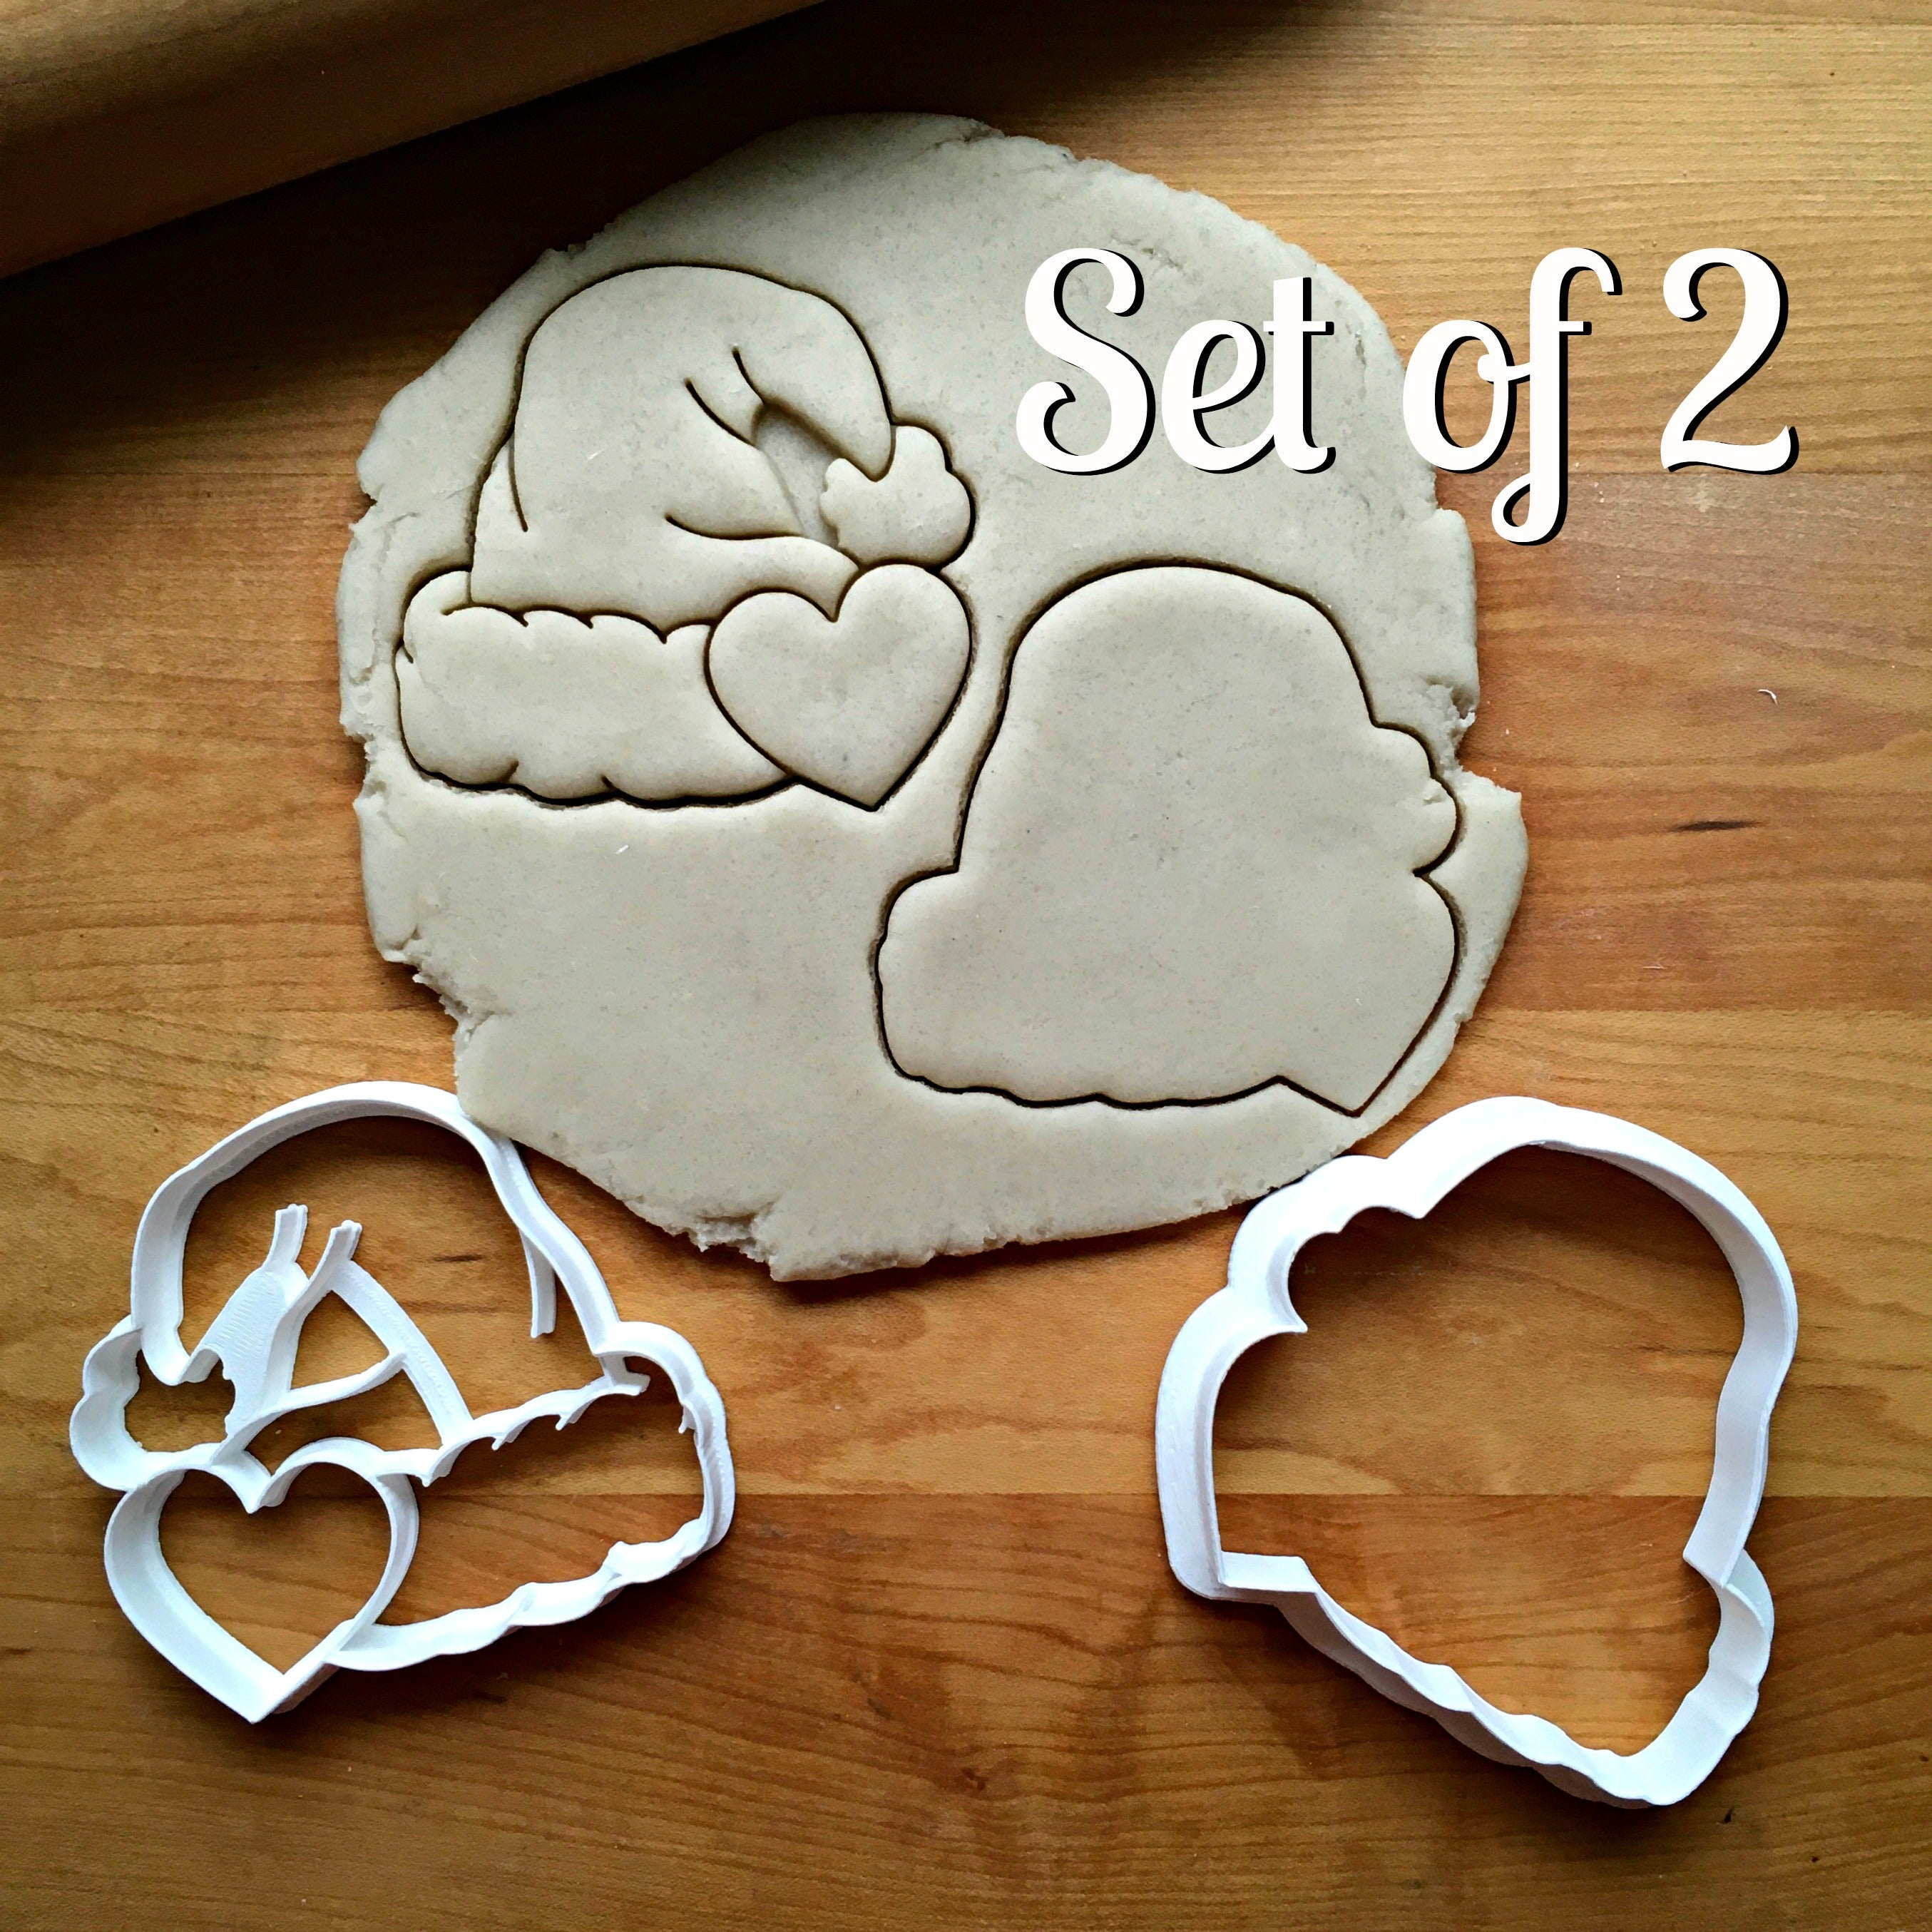 Set of 2 Santa Hat with Heart Cookie Cutters/Dishwasher Safe